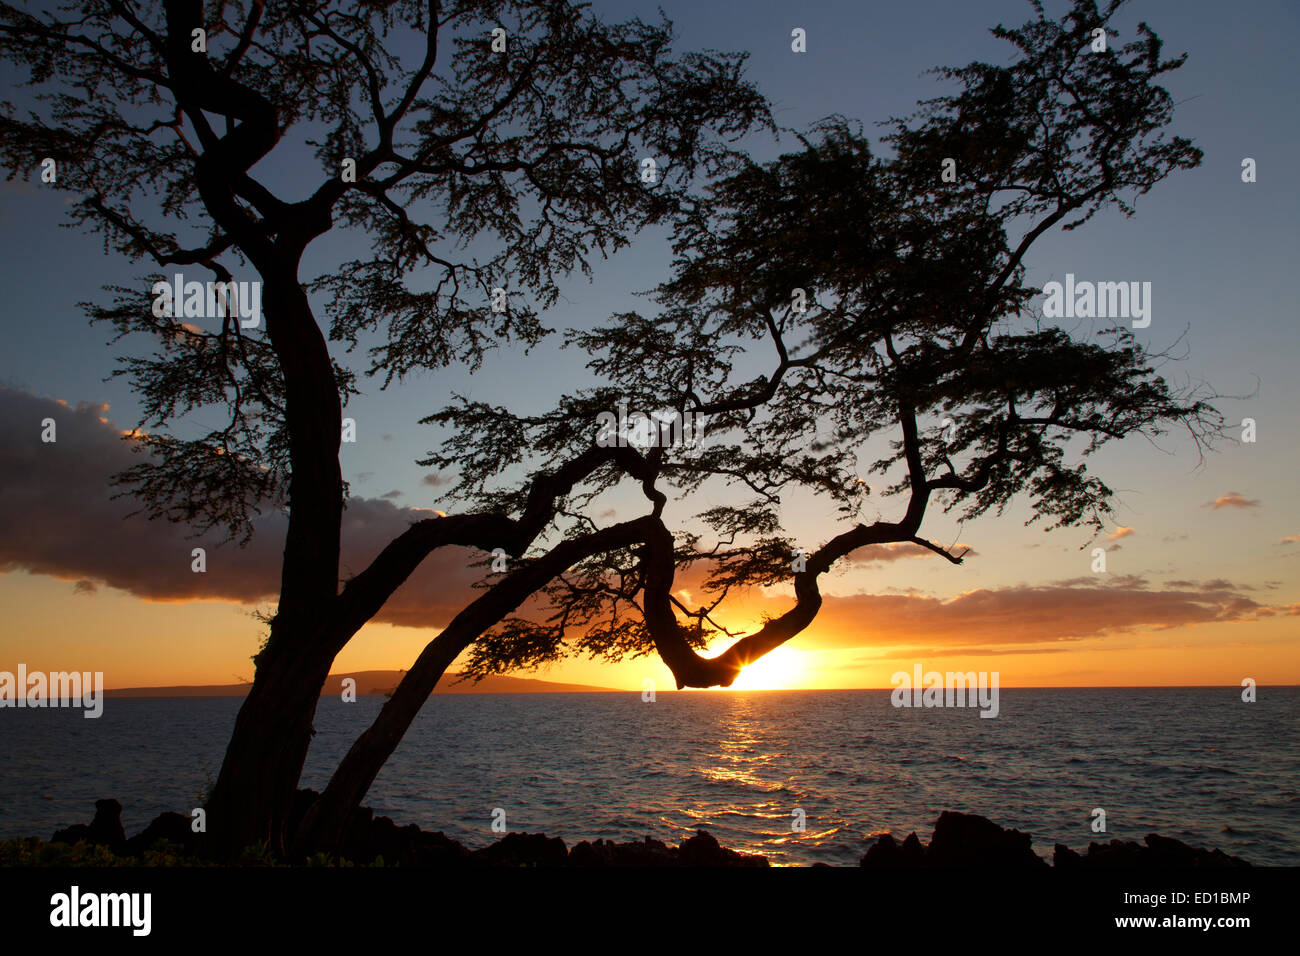 Sunset, Wailea Beach, Maui, Hawaii. - Stock Image